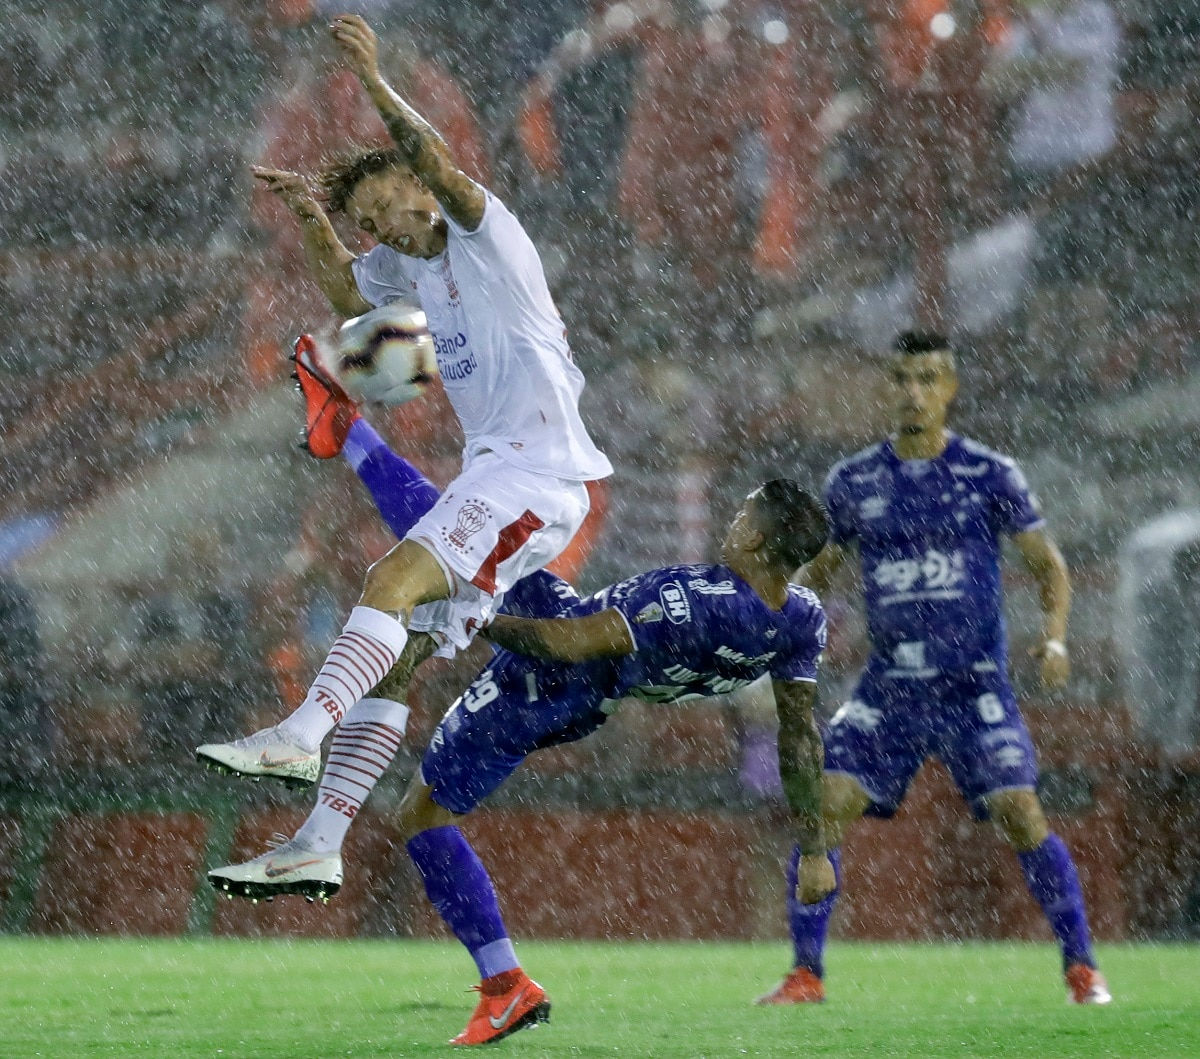 Lucas Romero of Brazil's Cruzeiro, right, fights for the ball with Ivan Javier Rossi of Argentina's Huracan during a Copa Libertadores soccer game in Buenos Aires, Argentina. (AP Photo/Natacha Pisarenko)